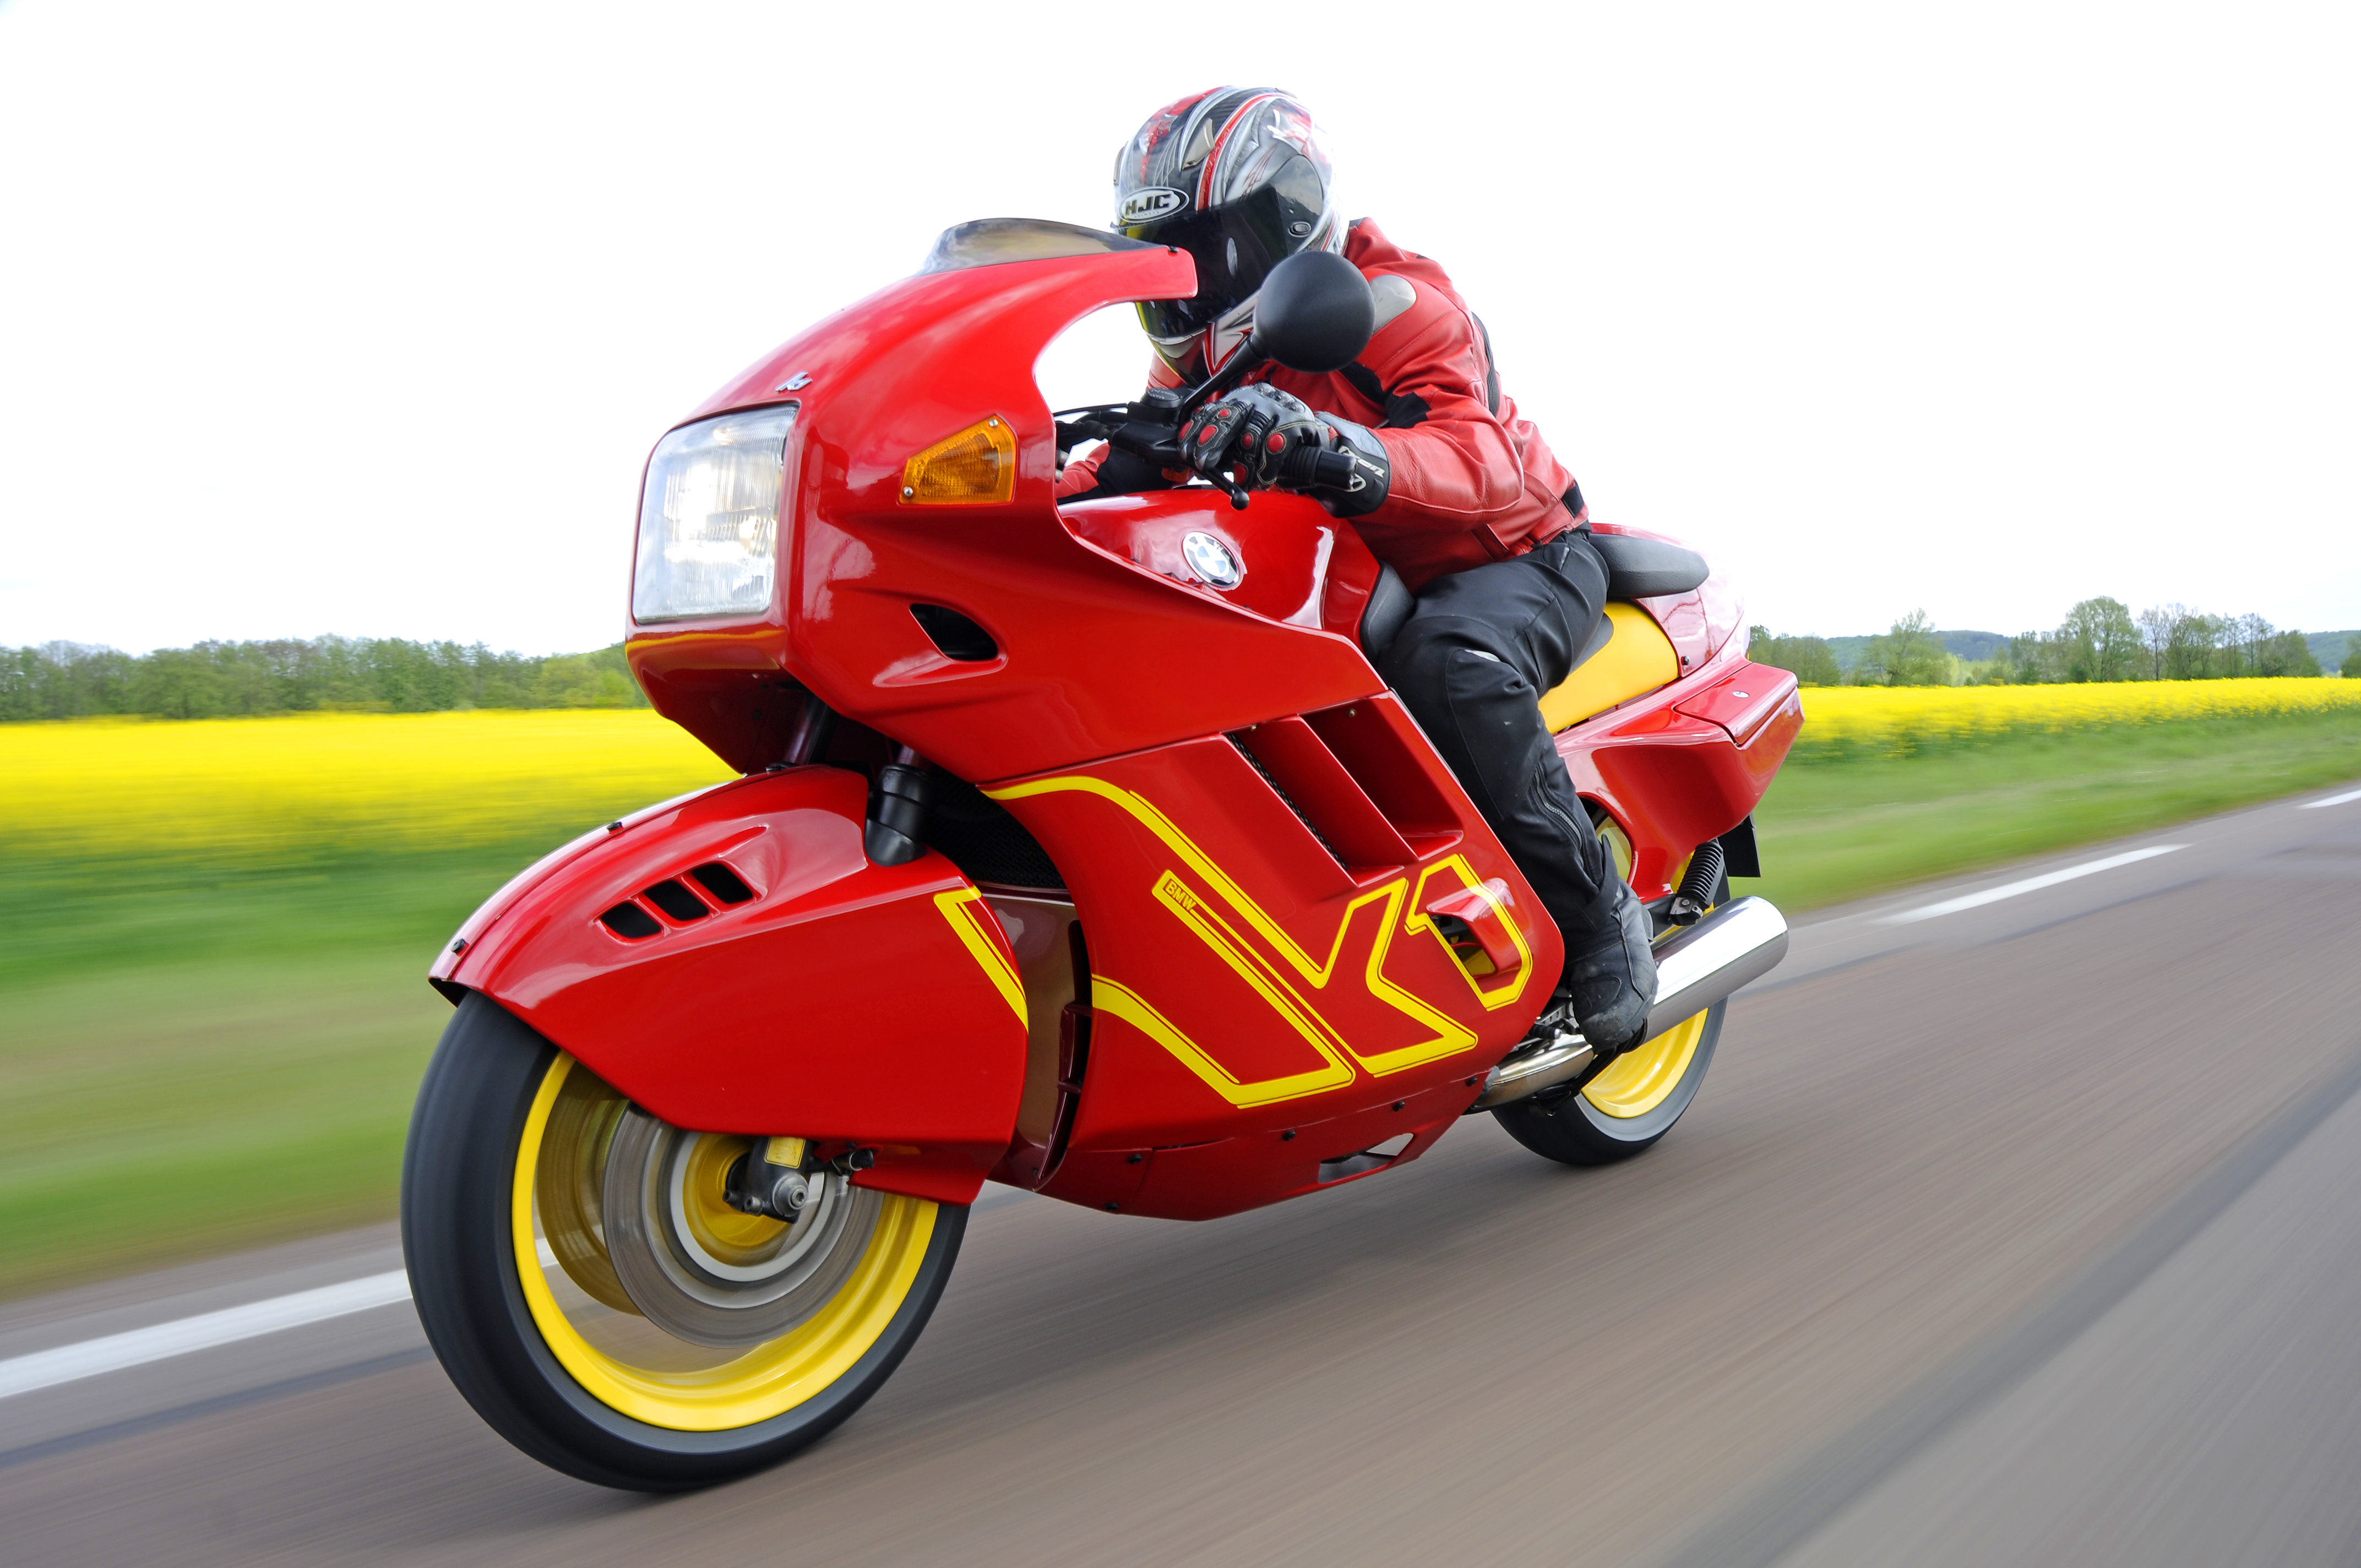 Bmw >> BMW K1: pics, specs and list of seriess by year - onlymotorbikes.com